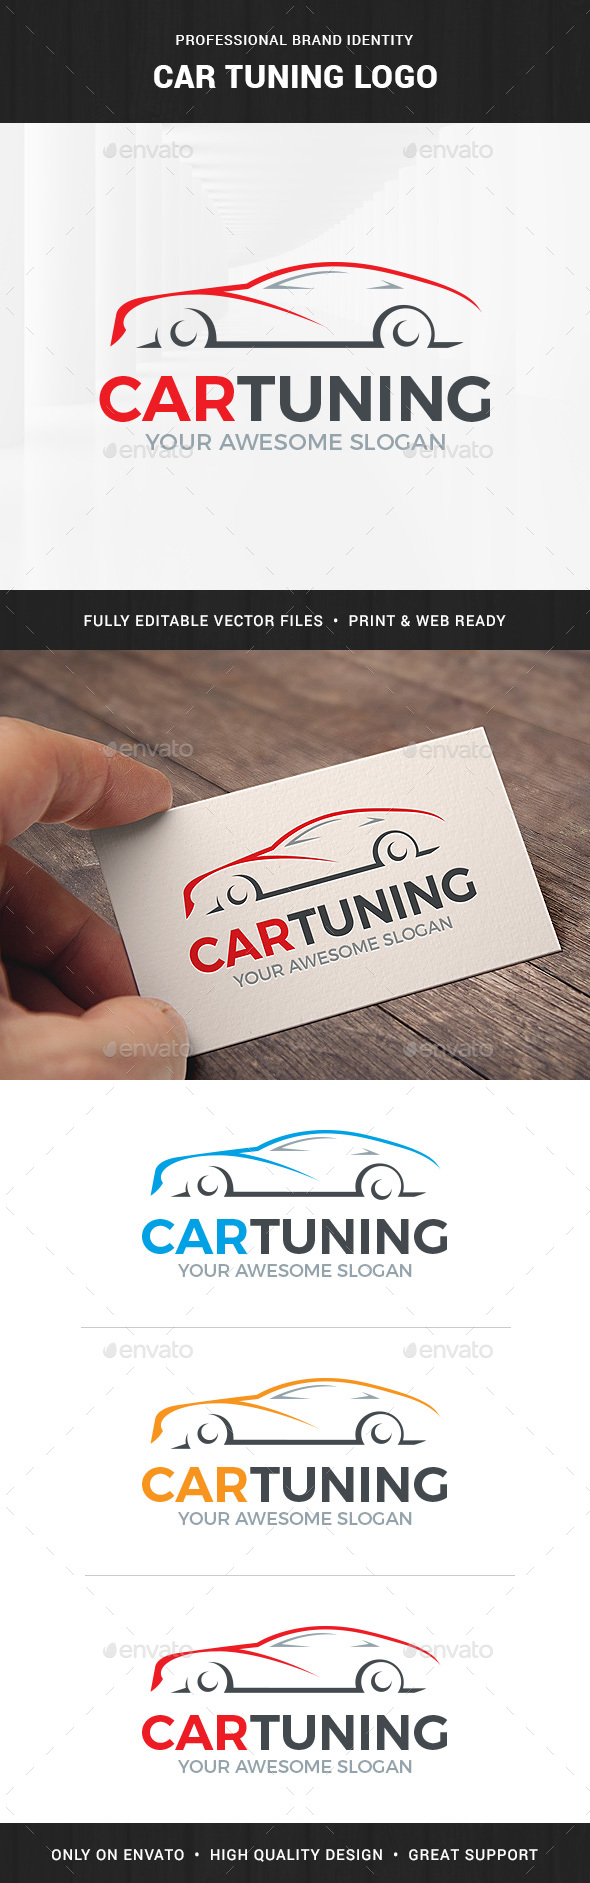 Car Tuning Logo Template - Objects Logo Templates